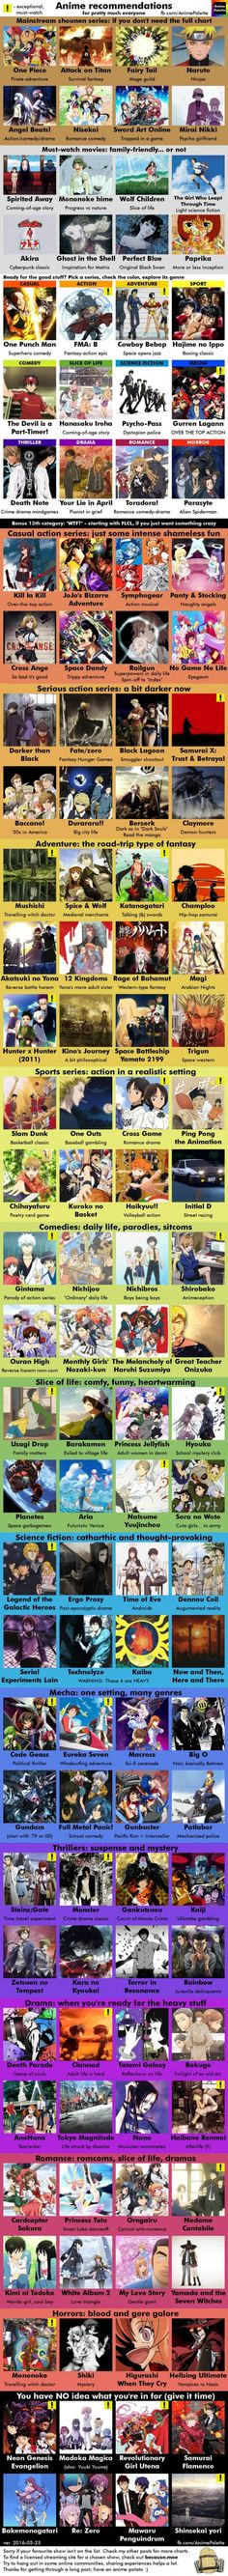 132 Anime Movies And Shows To Choose From On Day Off